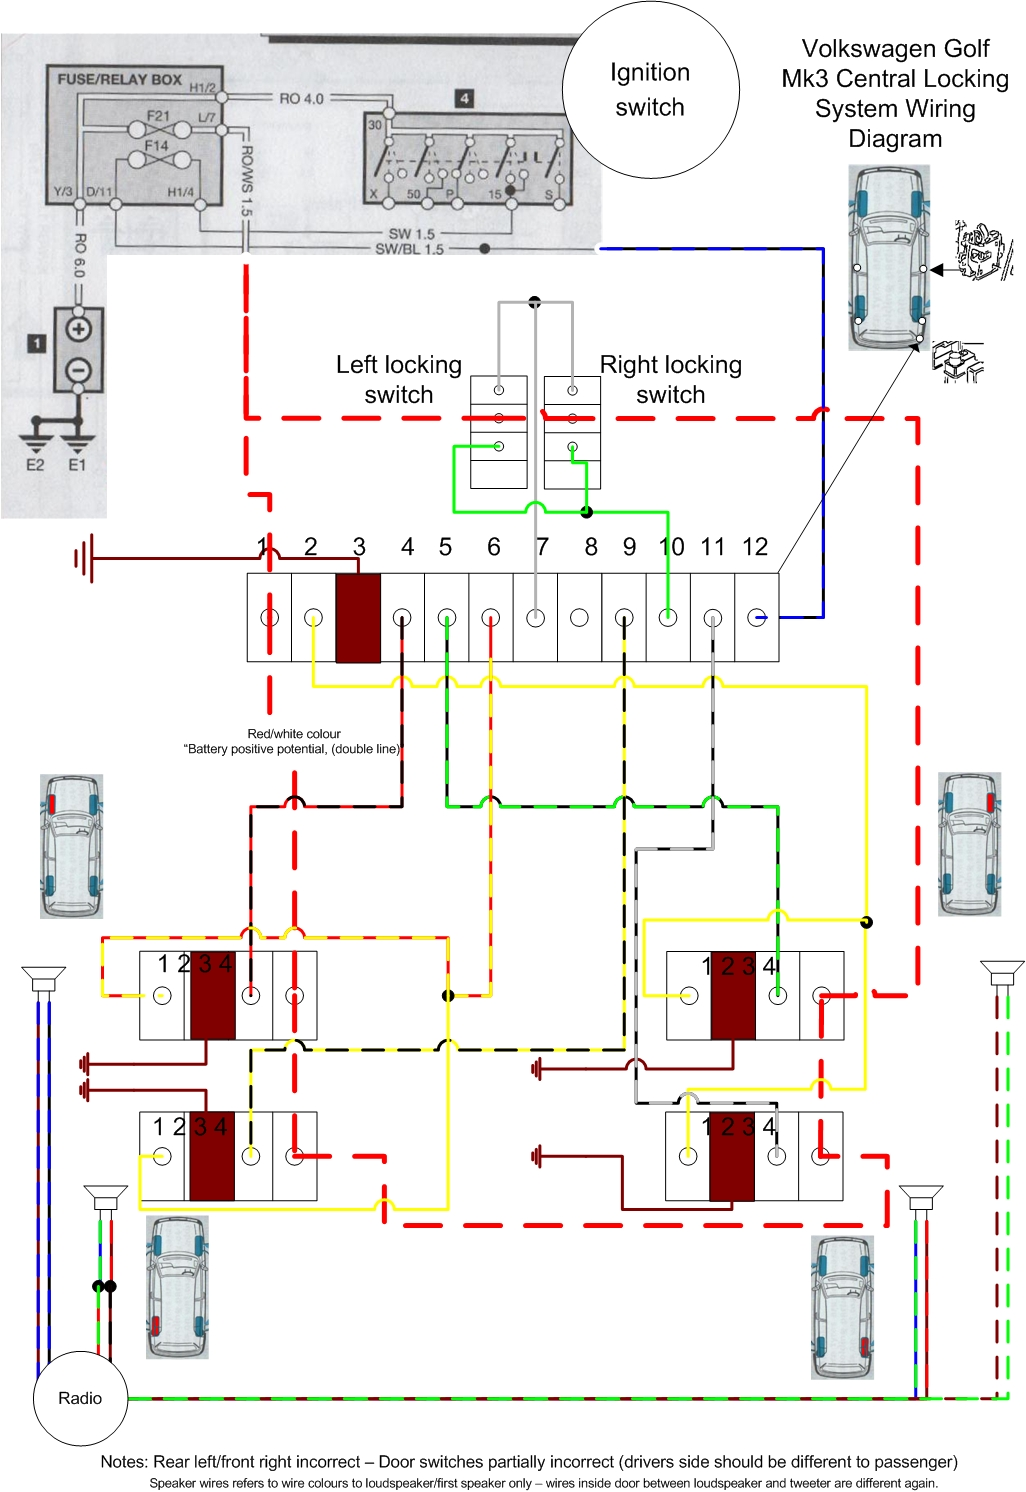 vw golf mk1 wiring diagram lexus is300 o2 sensor central locking system operation and diagnosis - the ecomatic forum